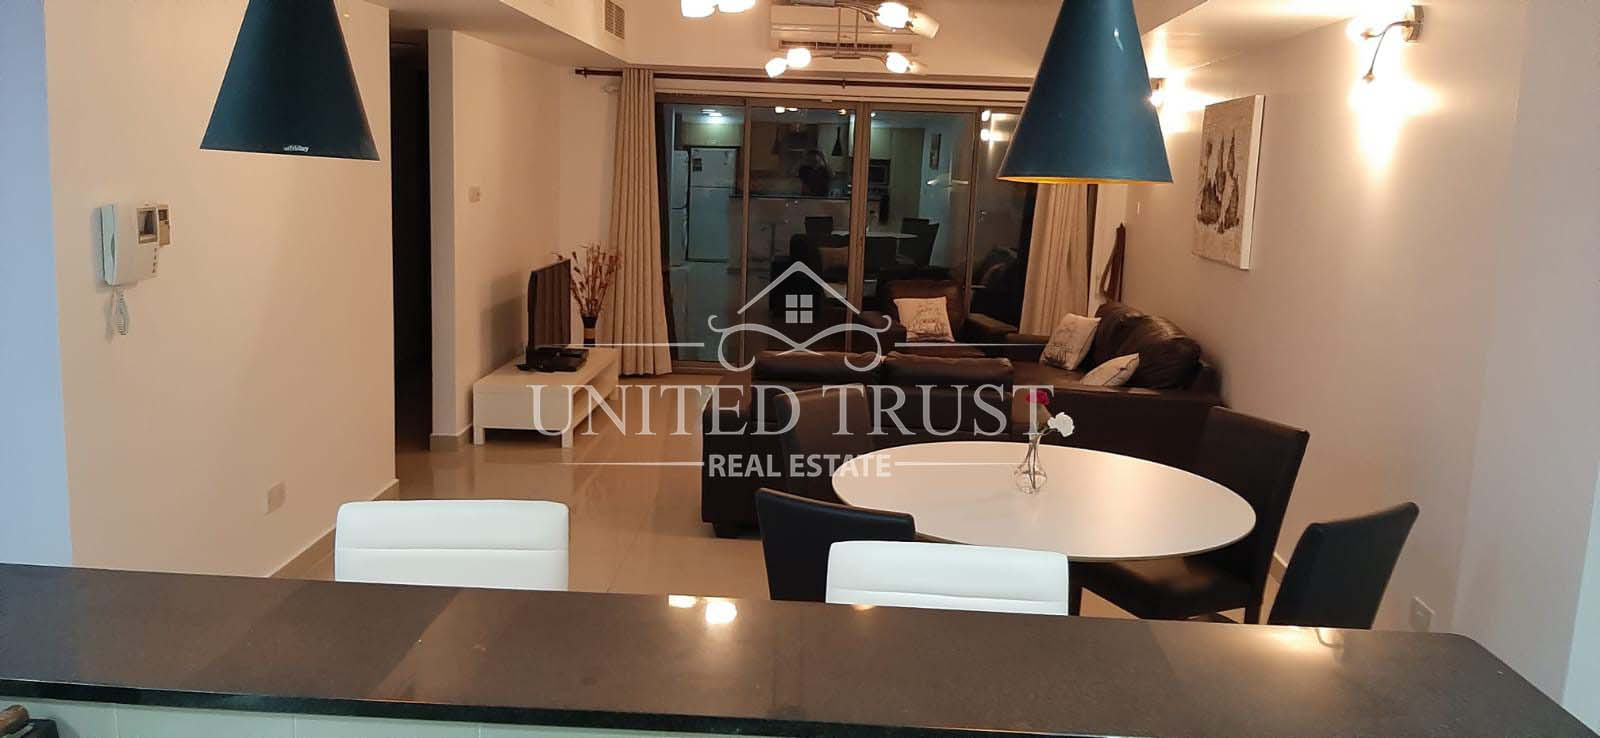 For rent Flat in Amwaj tala  prime location fully furnished . Ref: AMW-AB-033